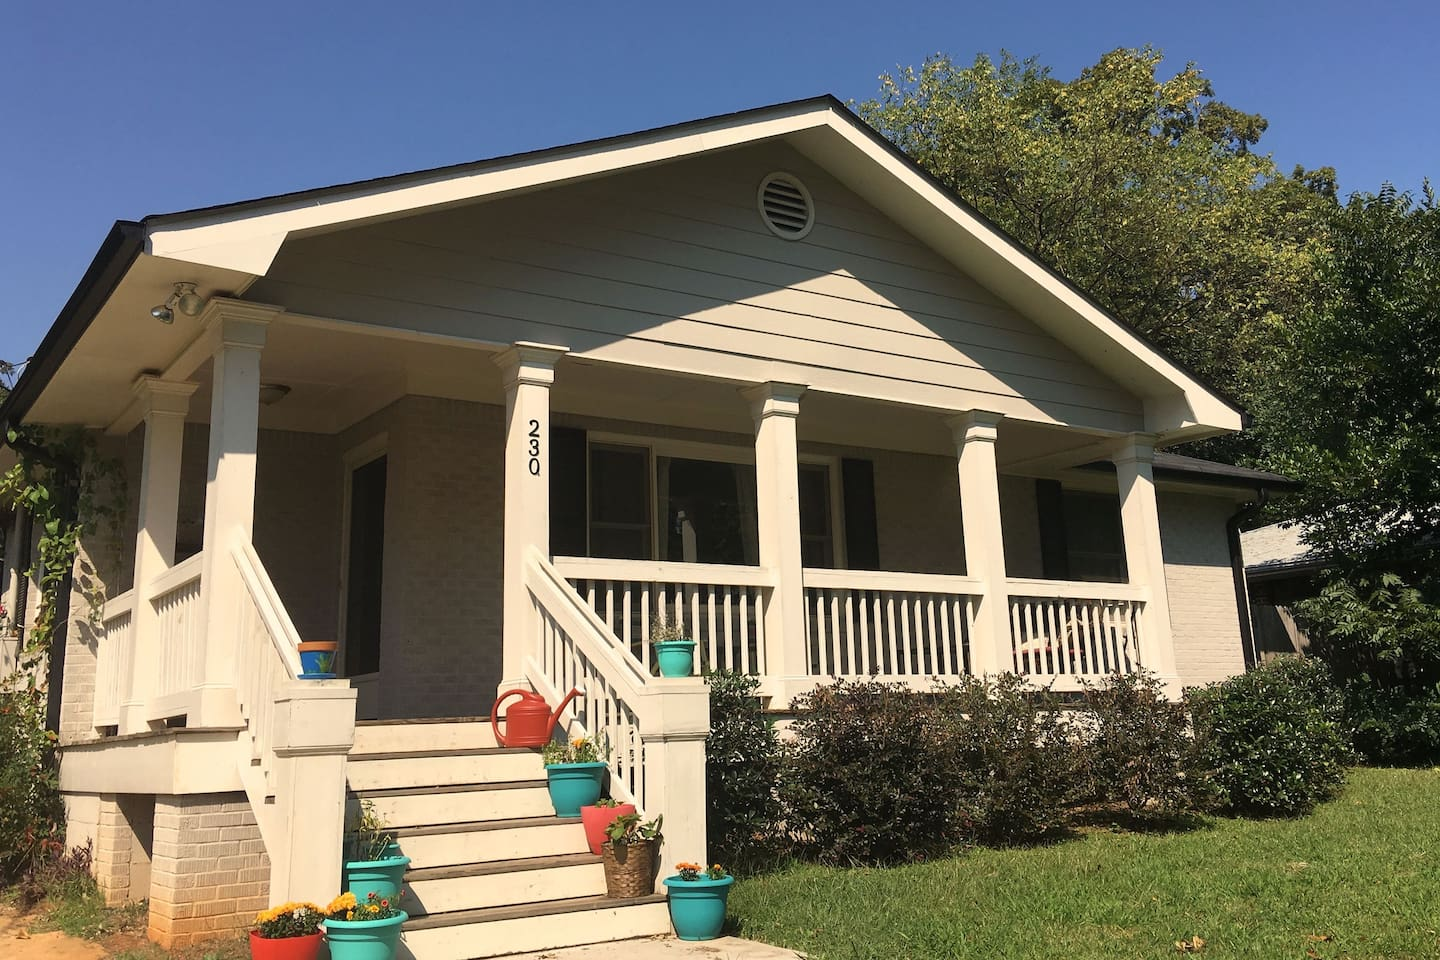 Huge front porch, beautiful, clean, full of light, perfect home away from home.